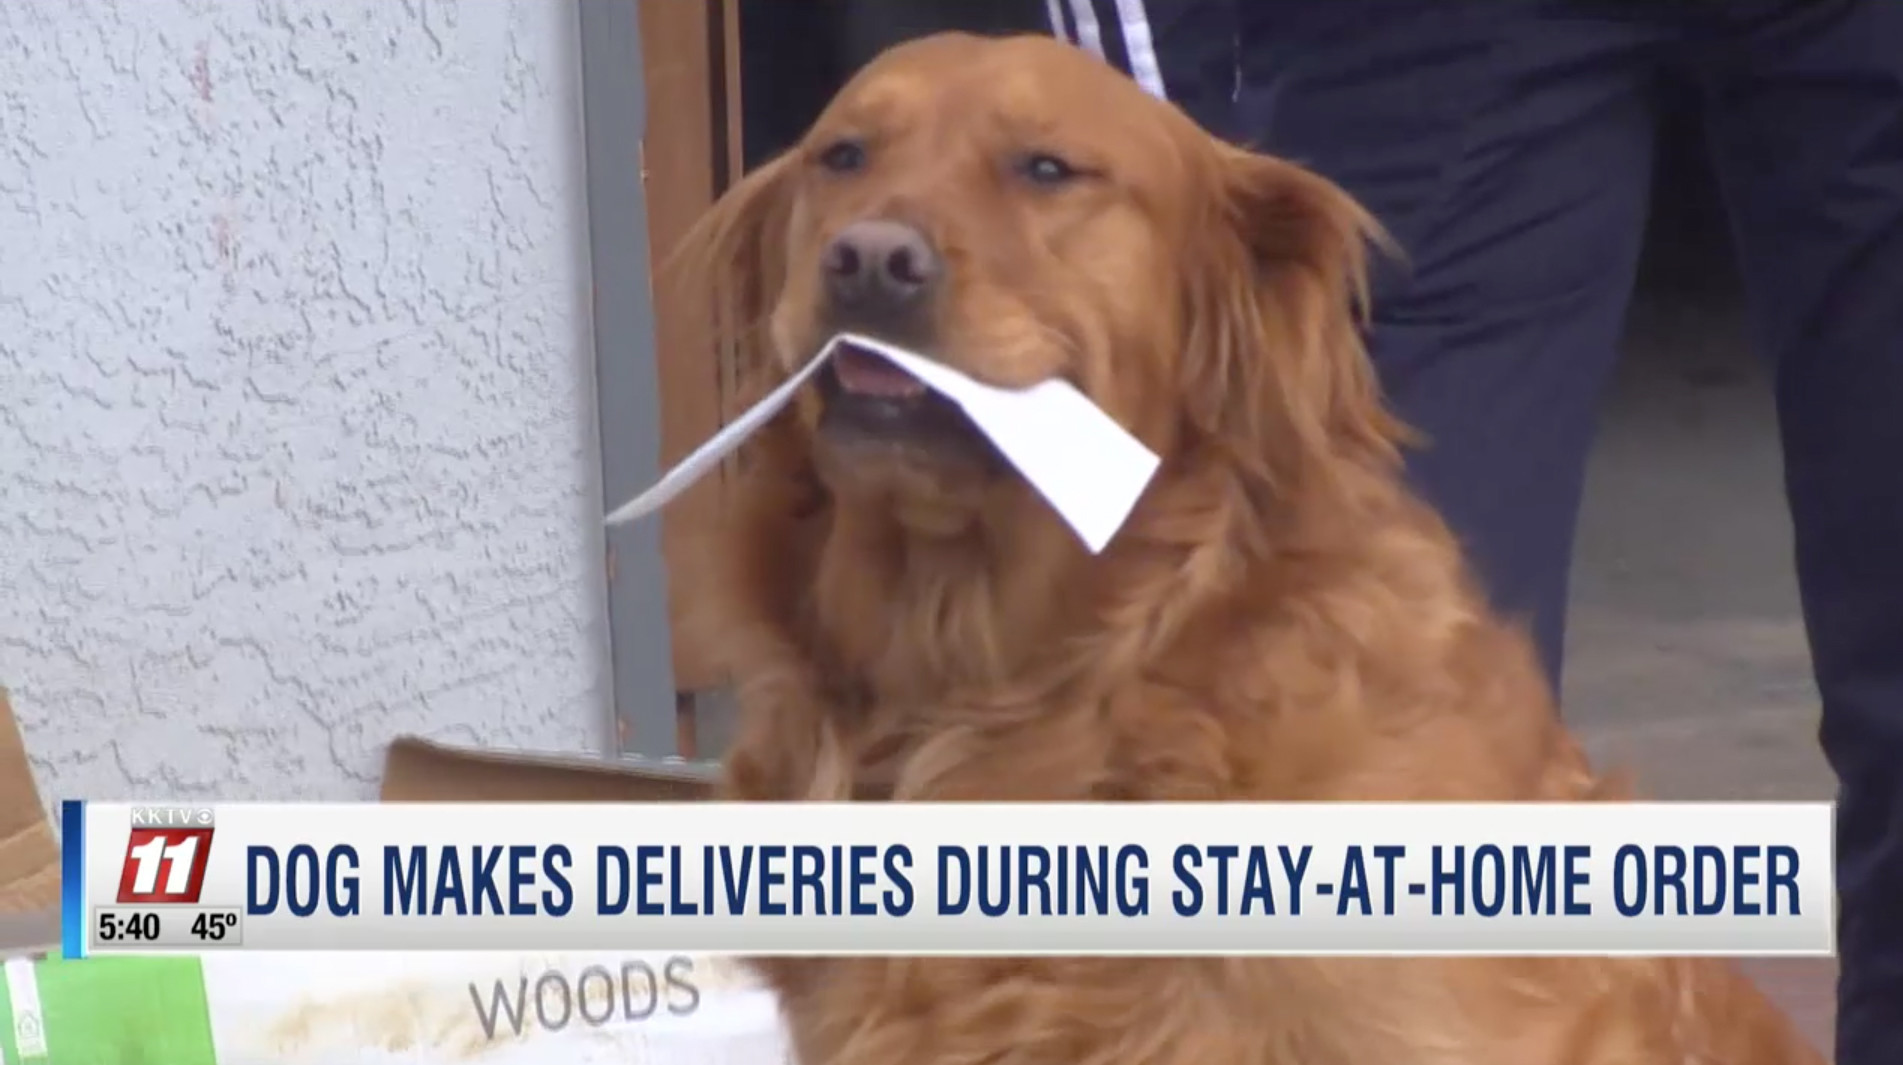 SEE IT: Dog is delivering groceries to quarantined neighbor with health problems during coronavirus pandemic